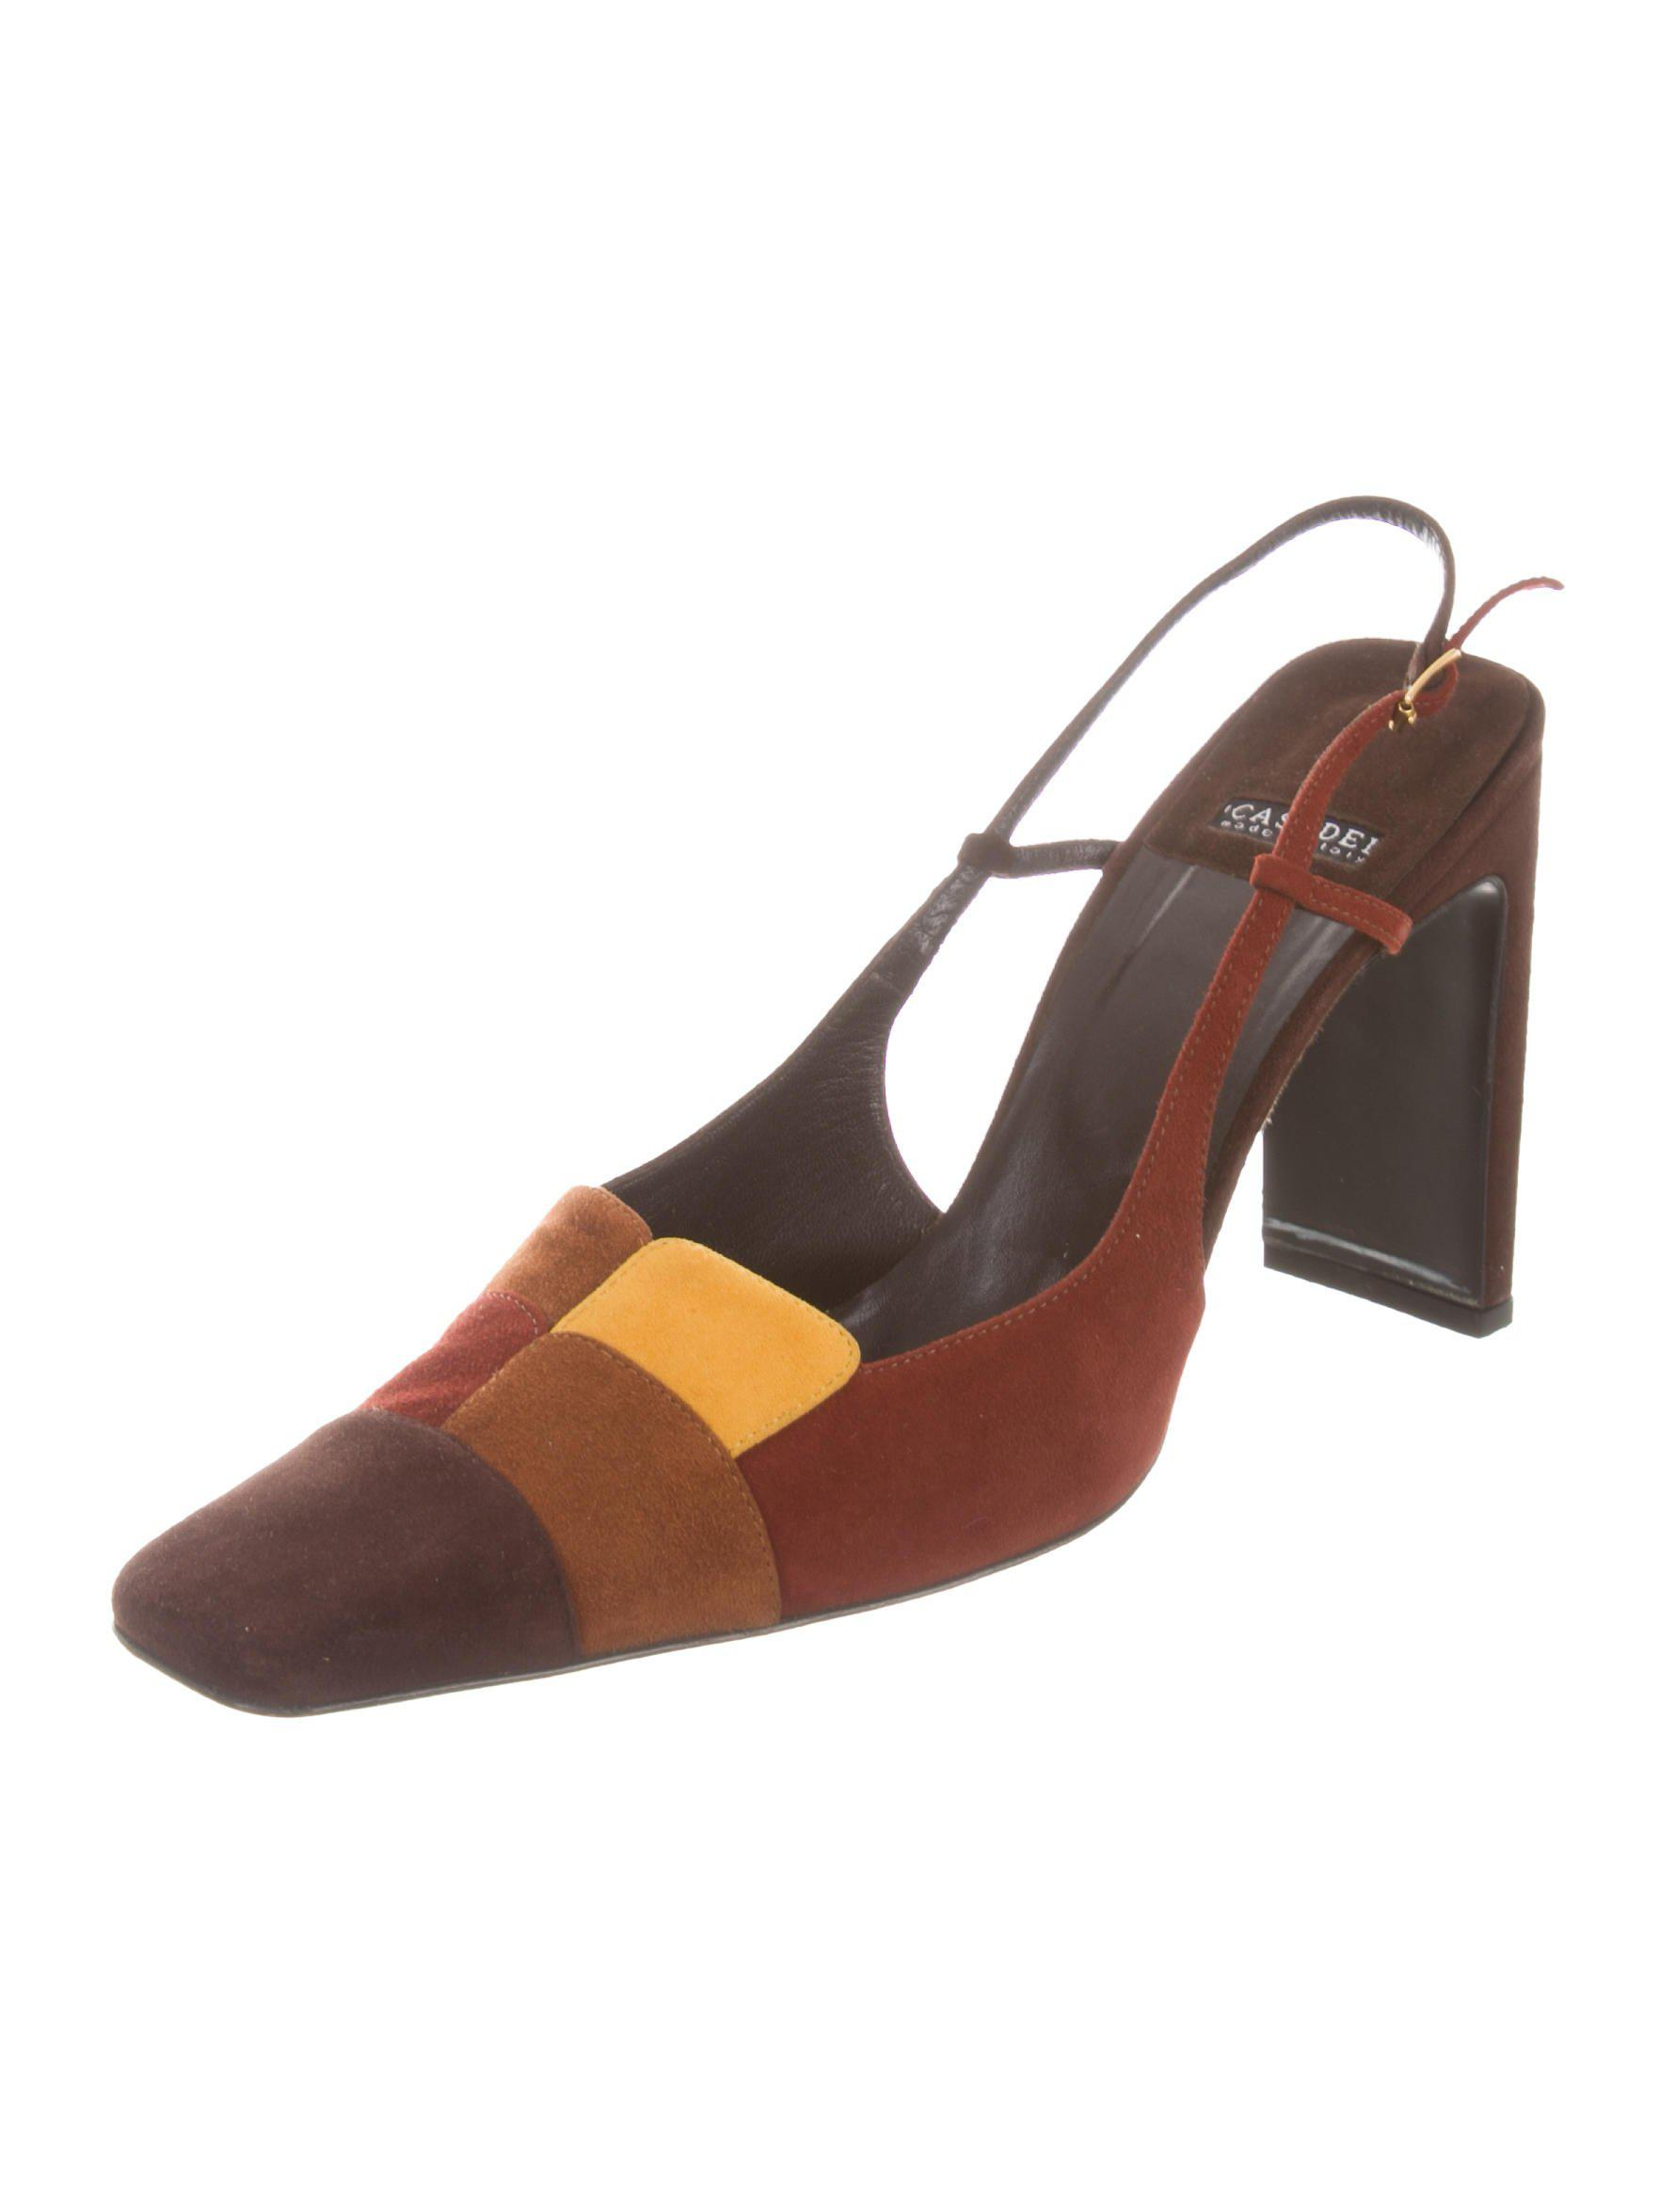 39d4182c940b Casadei Suede Slingback pumps marrone in Lyst OSdqPxwS